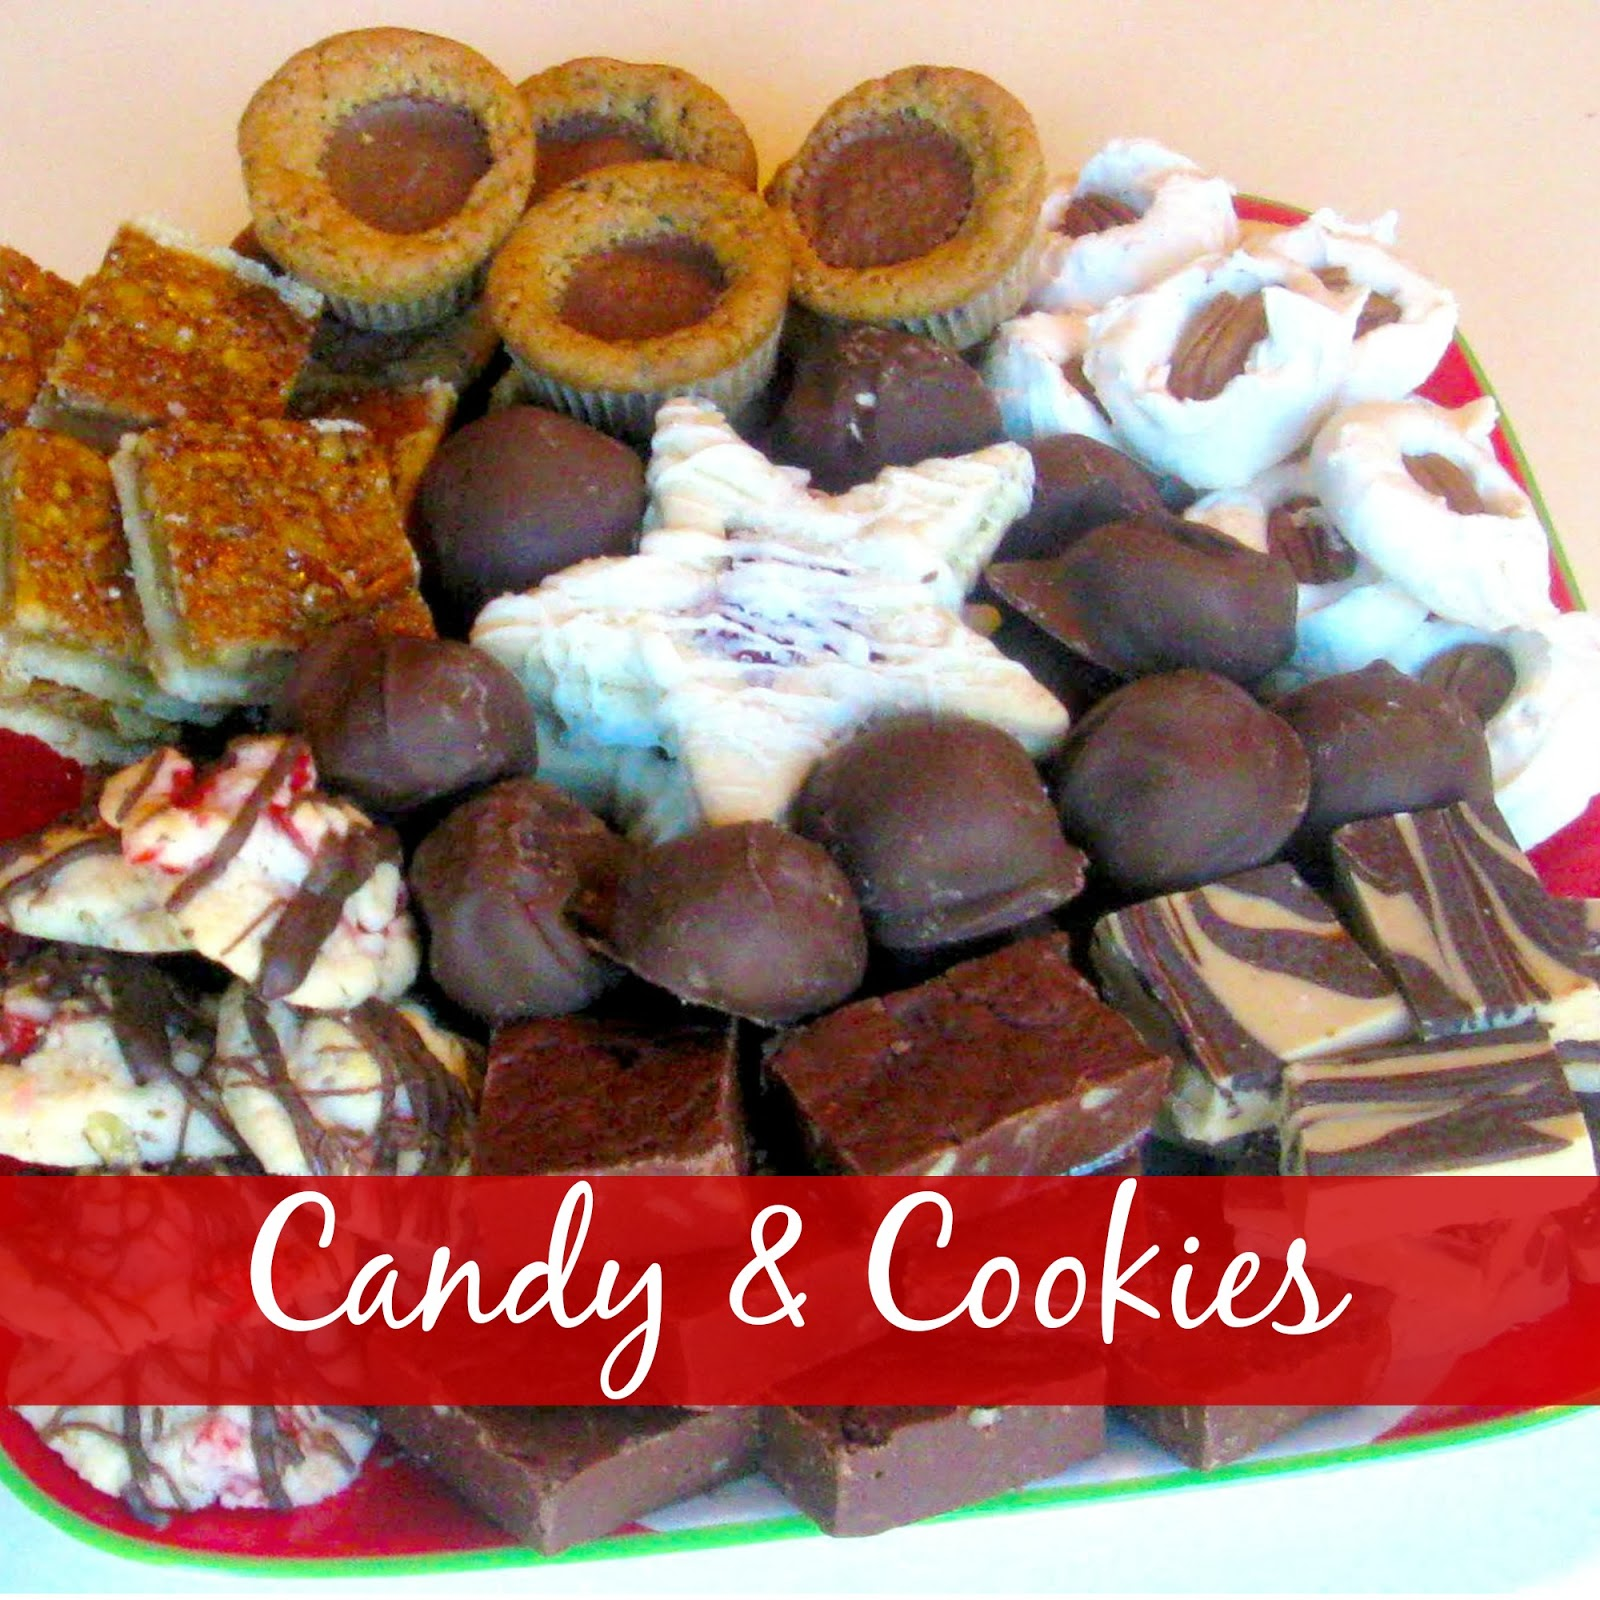 Candy & Cookies